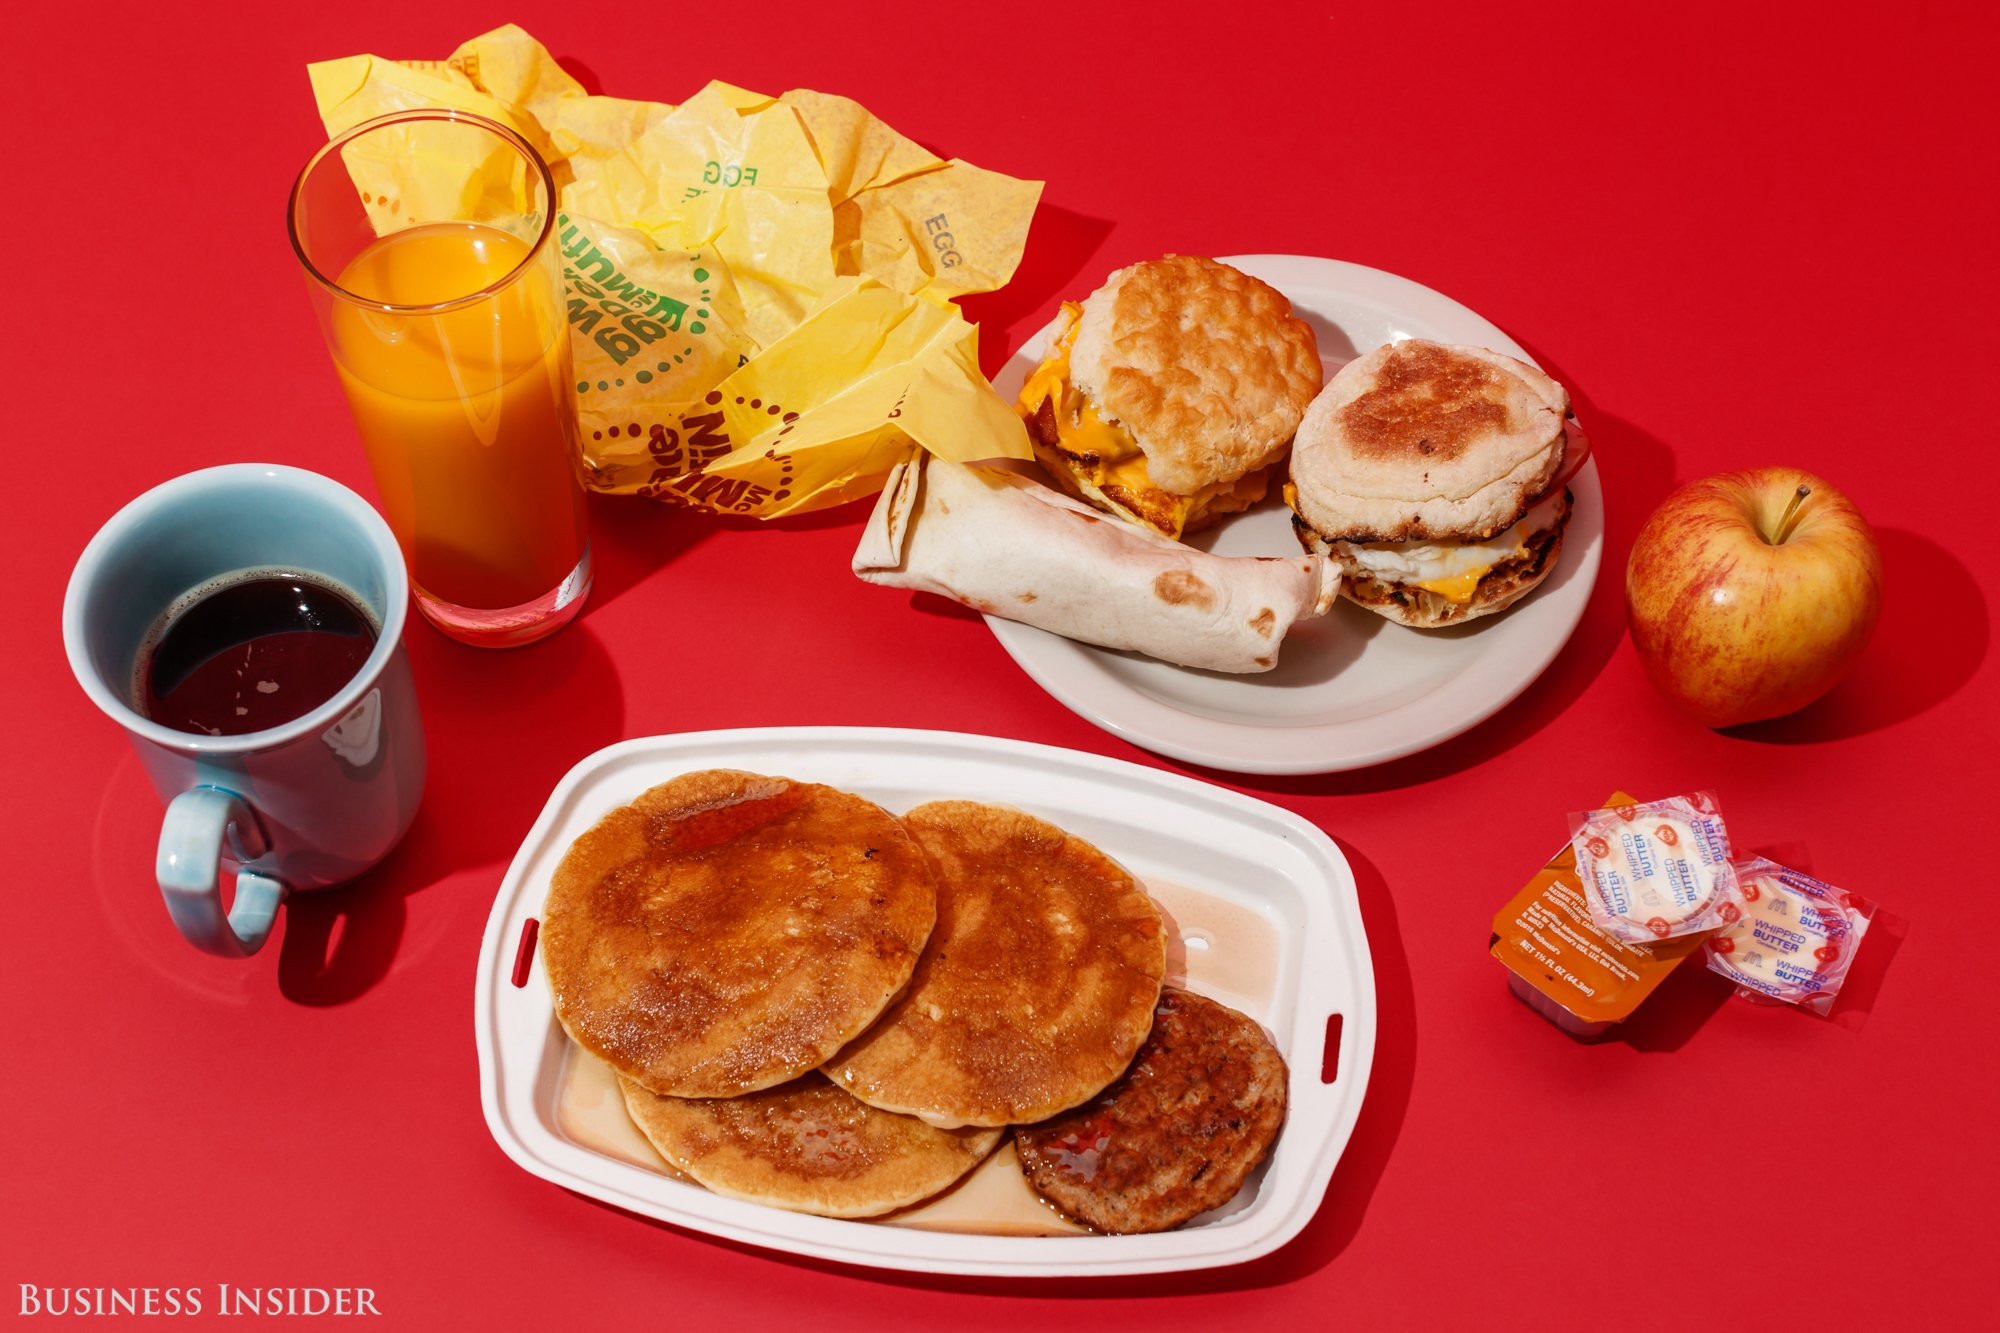 Healthy Breakfast Mcdonalds  McDonald s has a new strategy in the fast food value wars